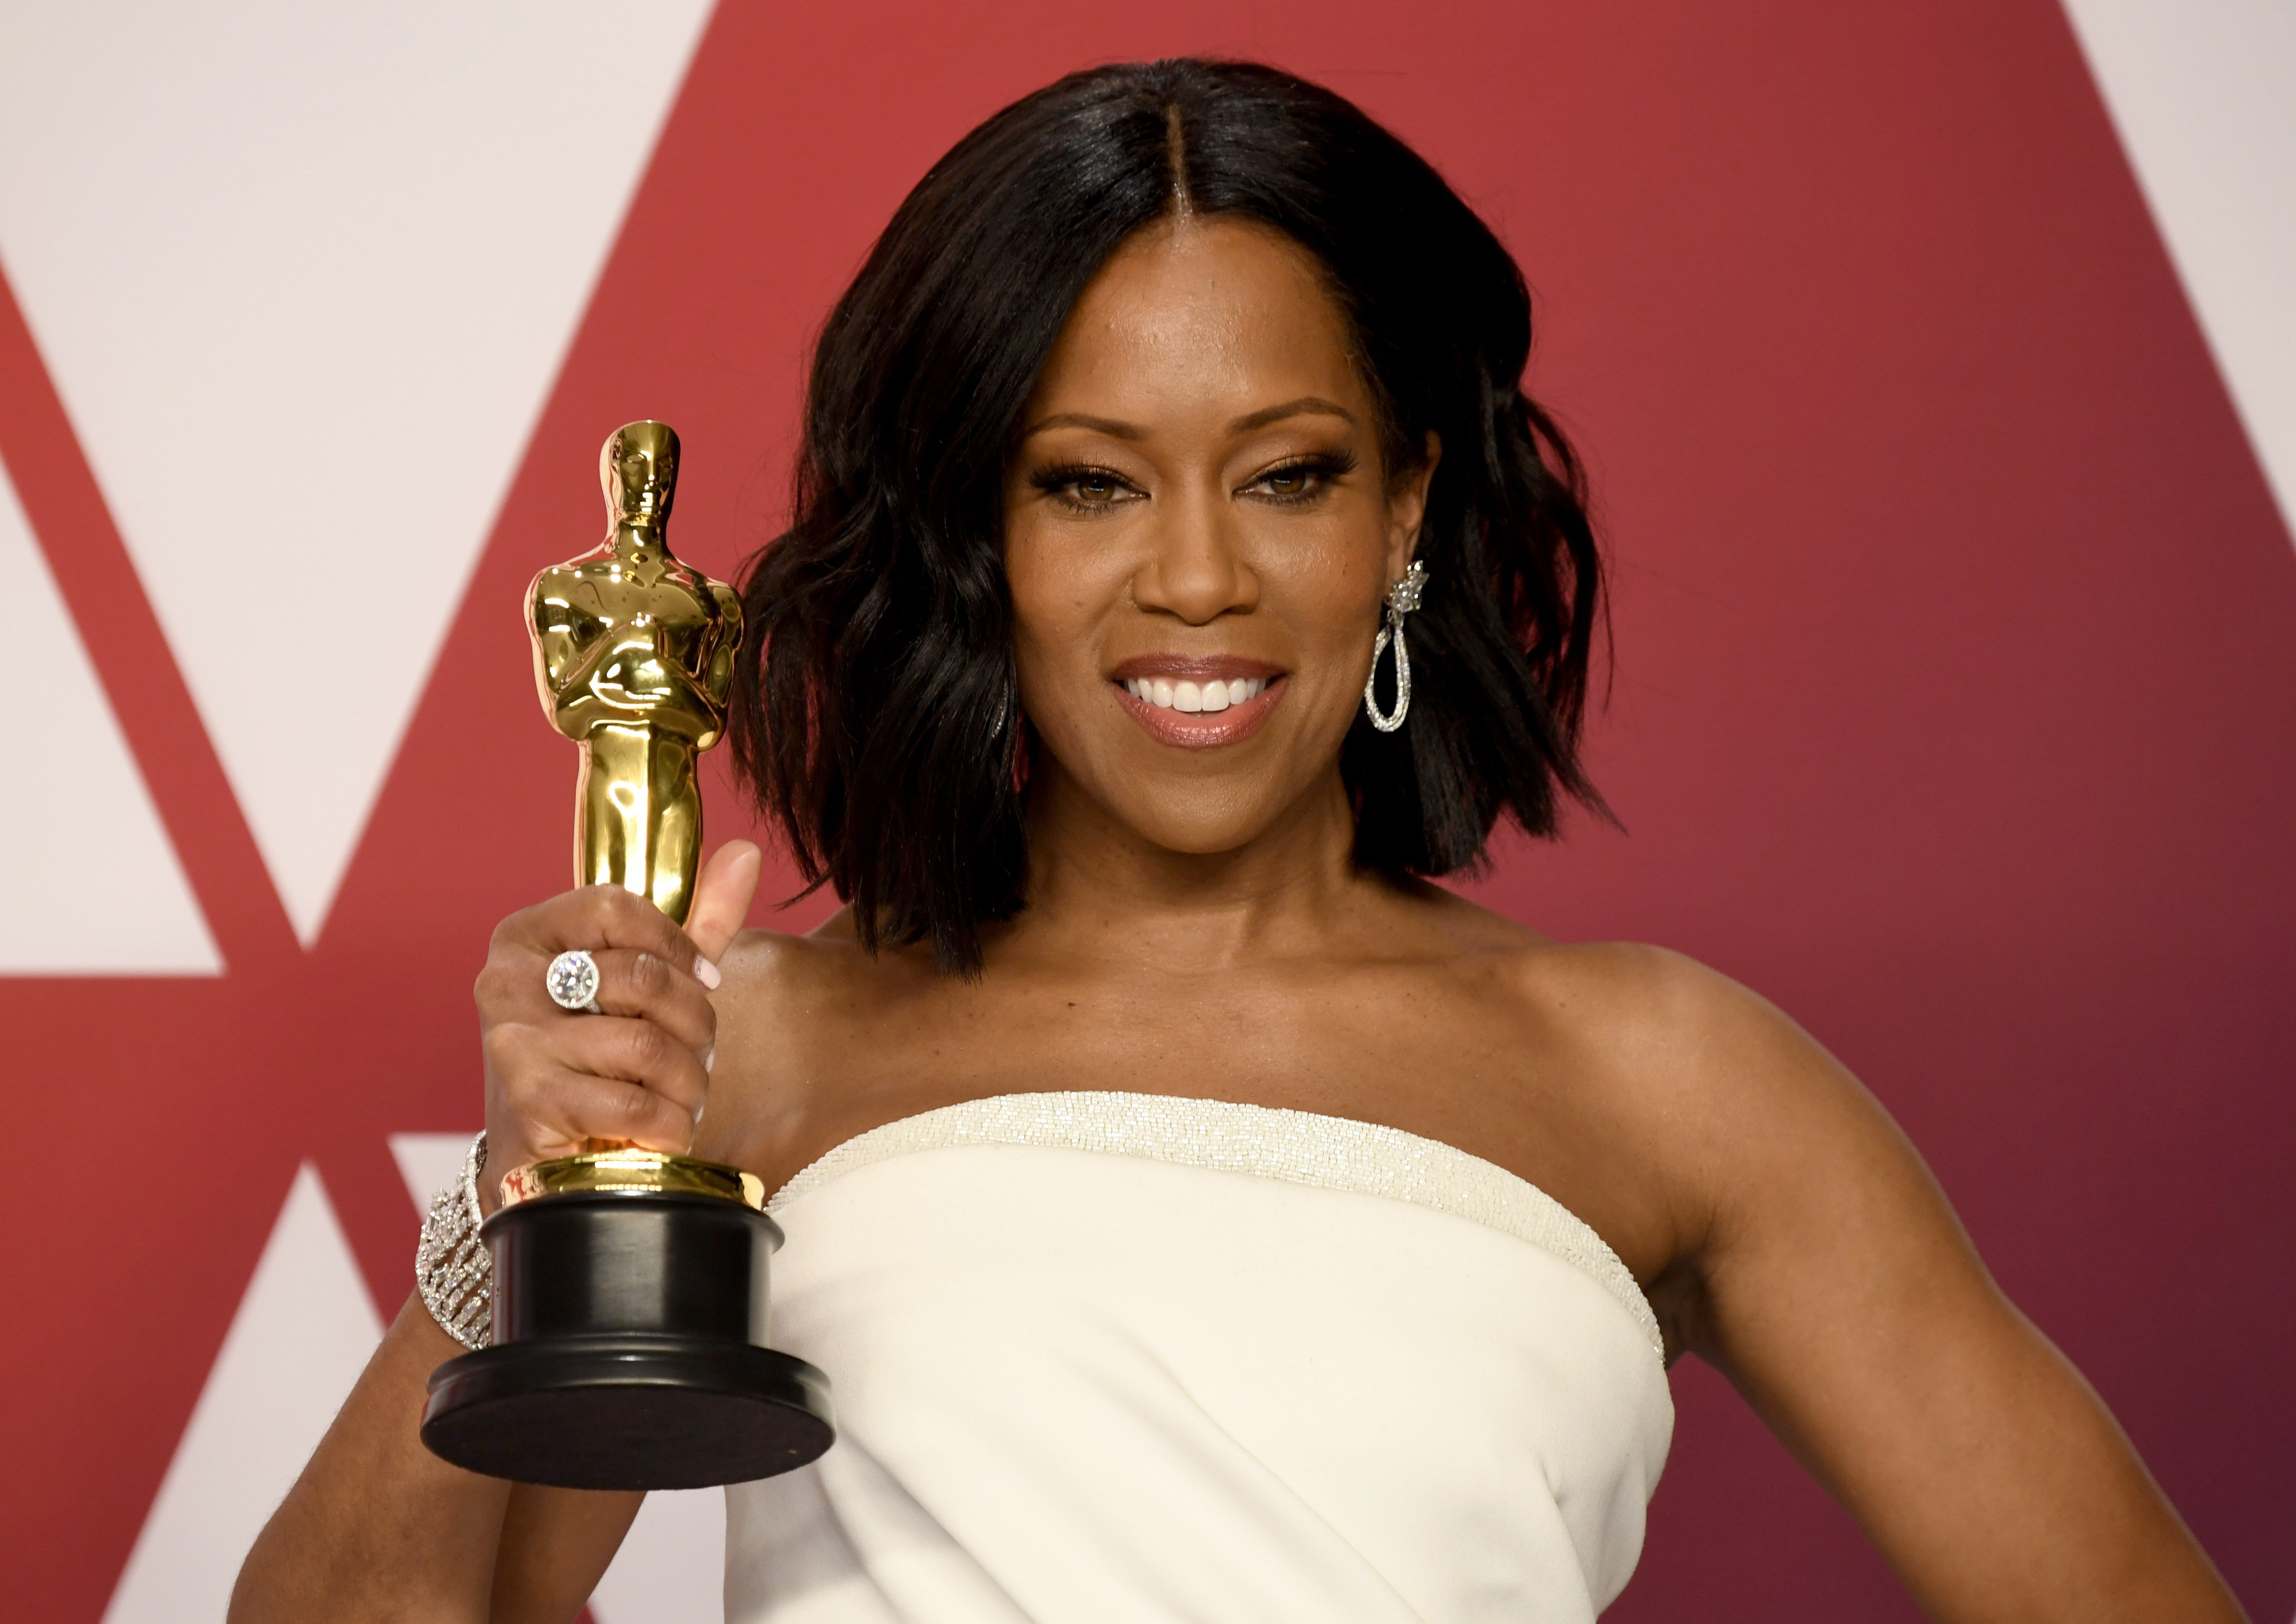 Image Credits: Getty Images | Regina King posing with her Oscar